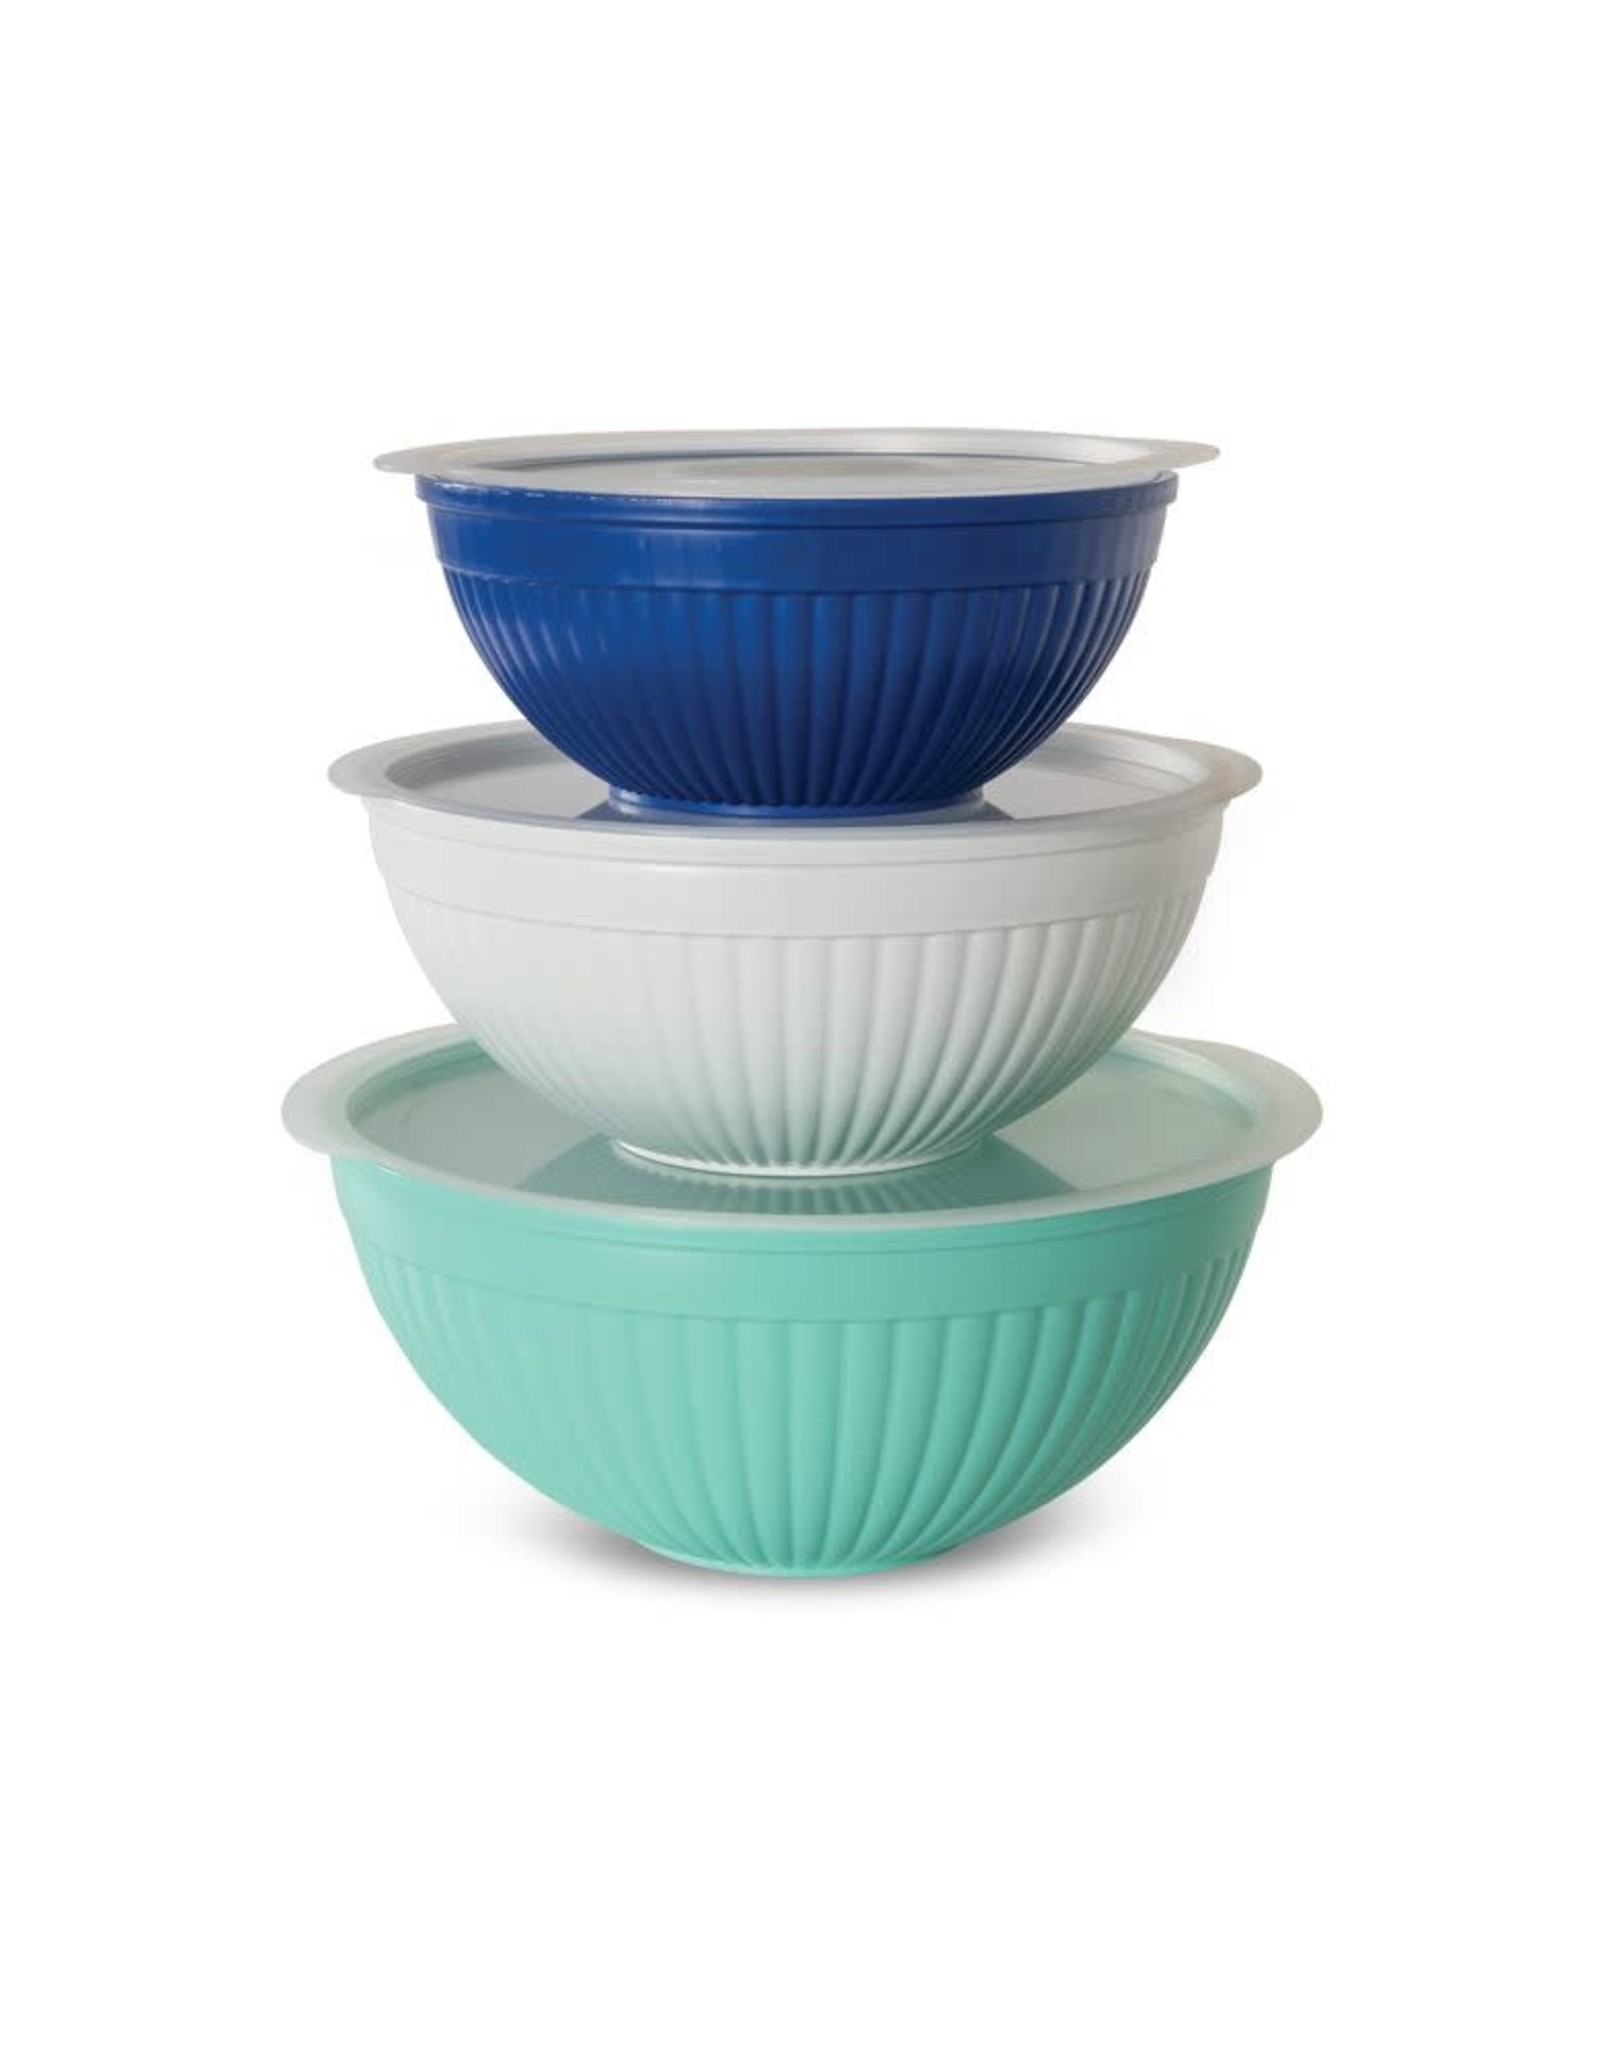 Nordicware 6 PIECE PREP & SERVE COVERED BOWL SET